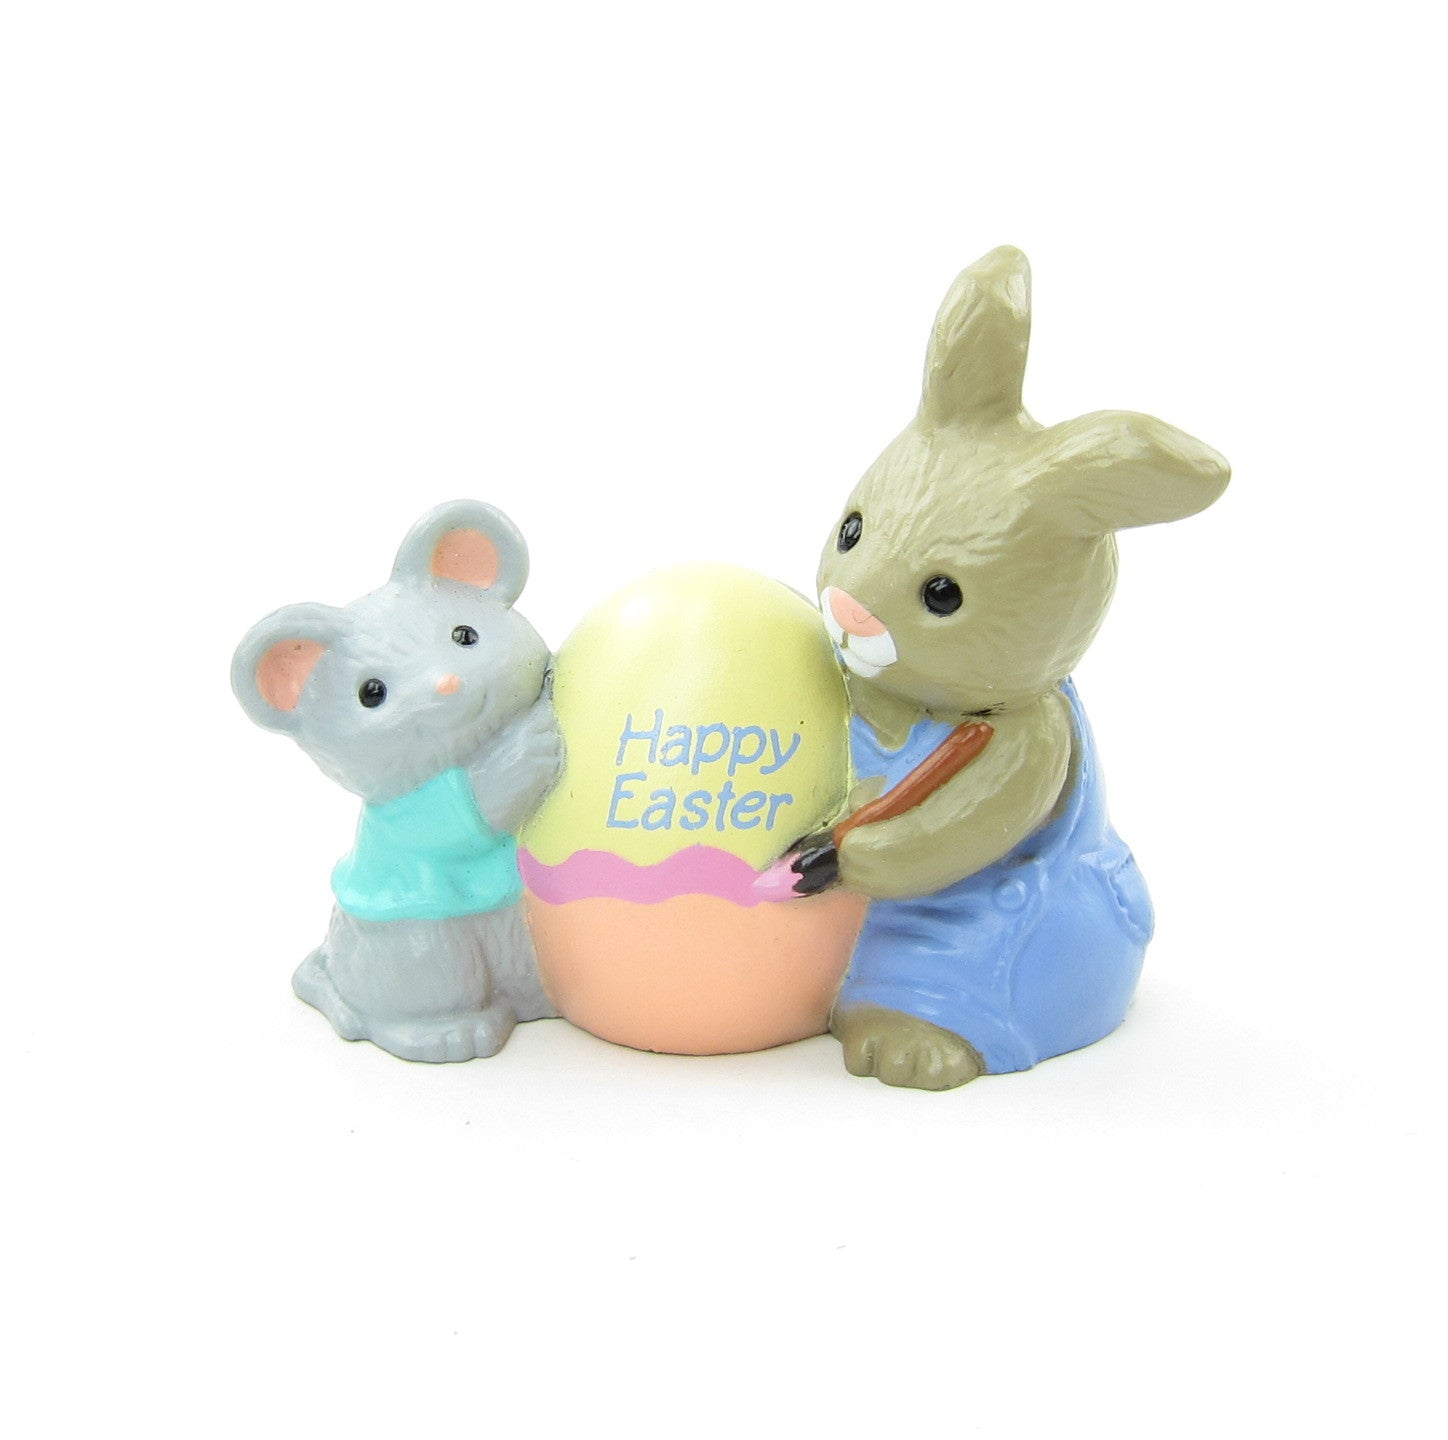 Happy Easter 1990 Mouse and Bunny Merry Miniatures figurine